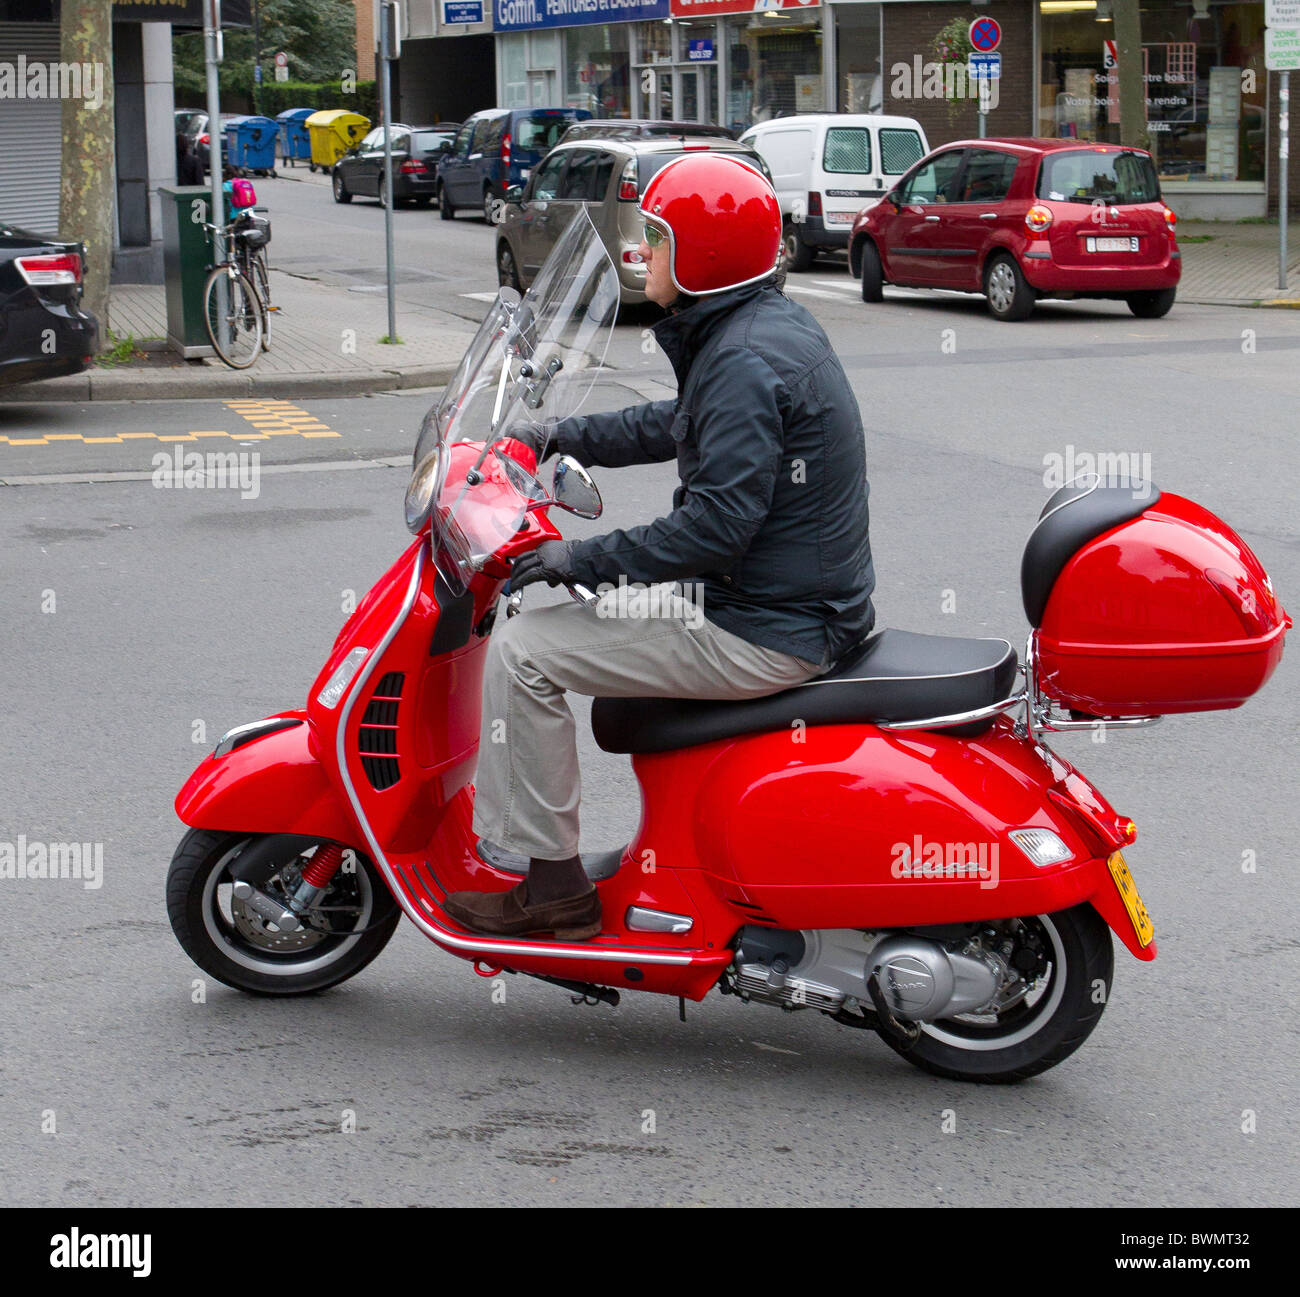 red vespa rider helmet street scooter Stock Photo: 33034710